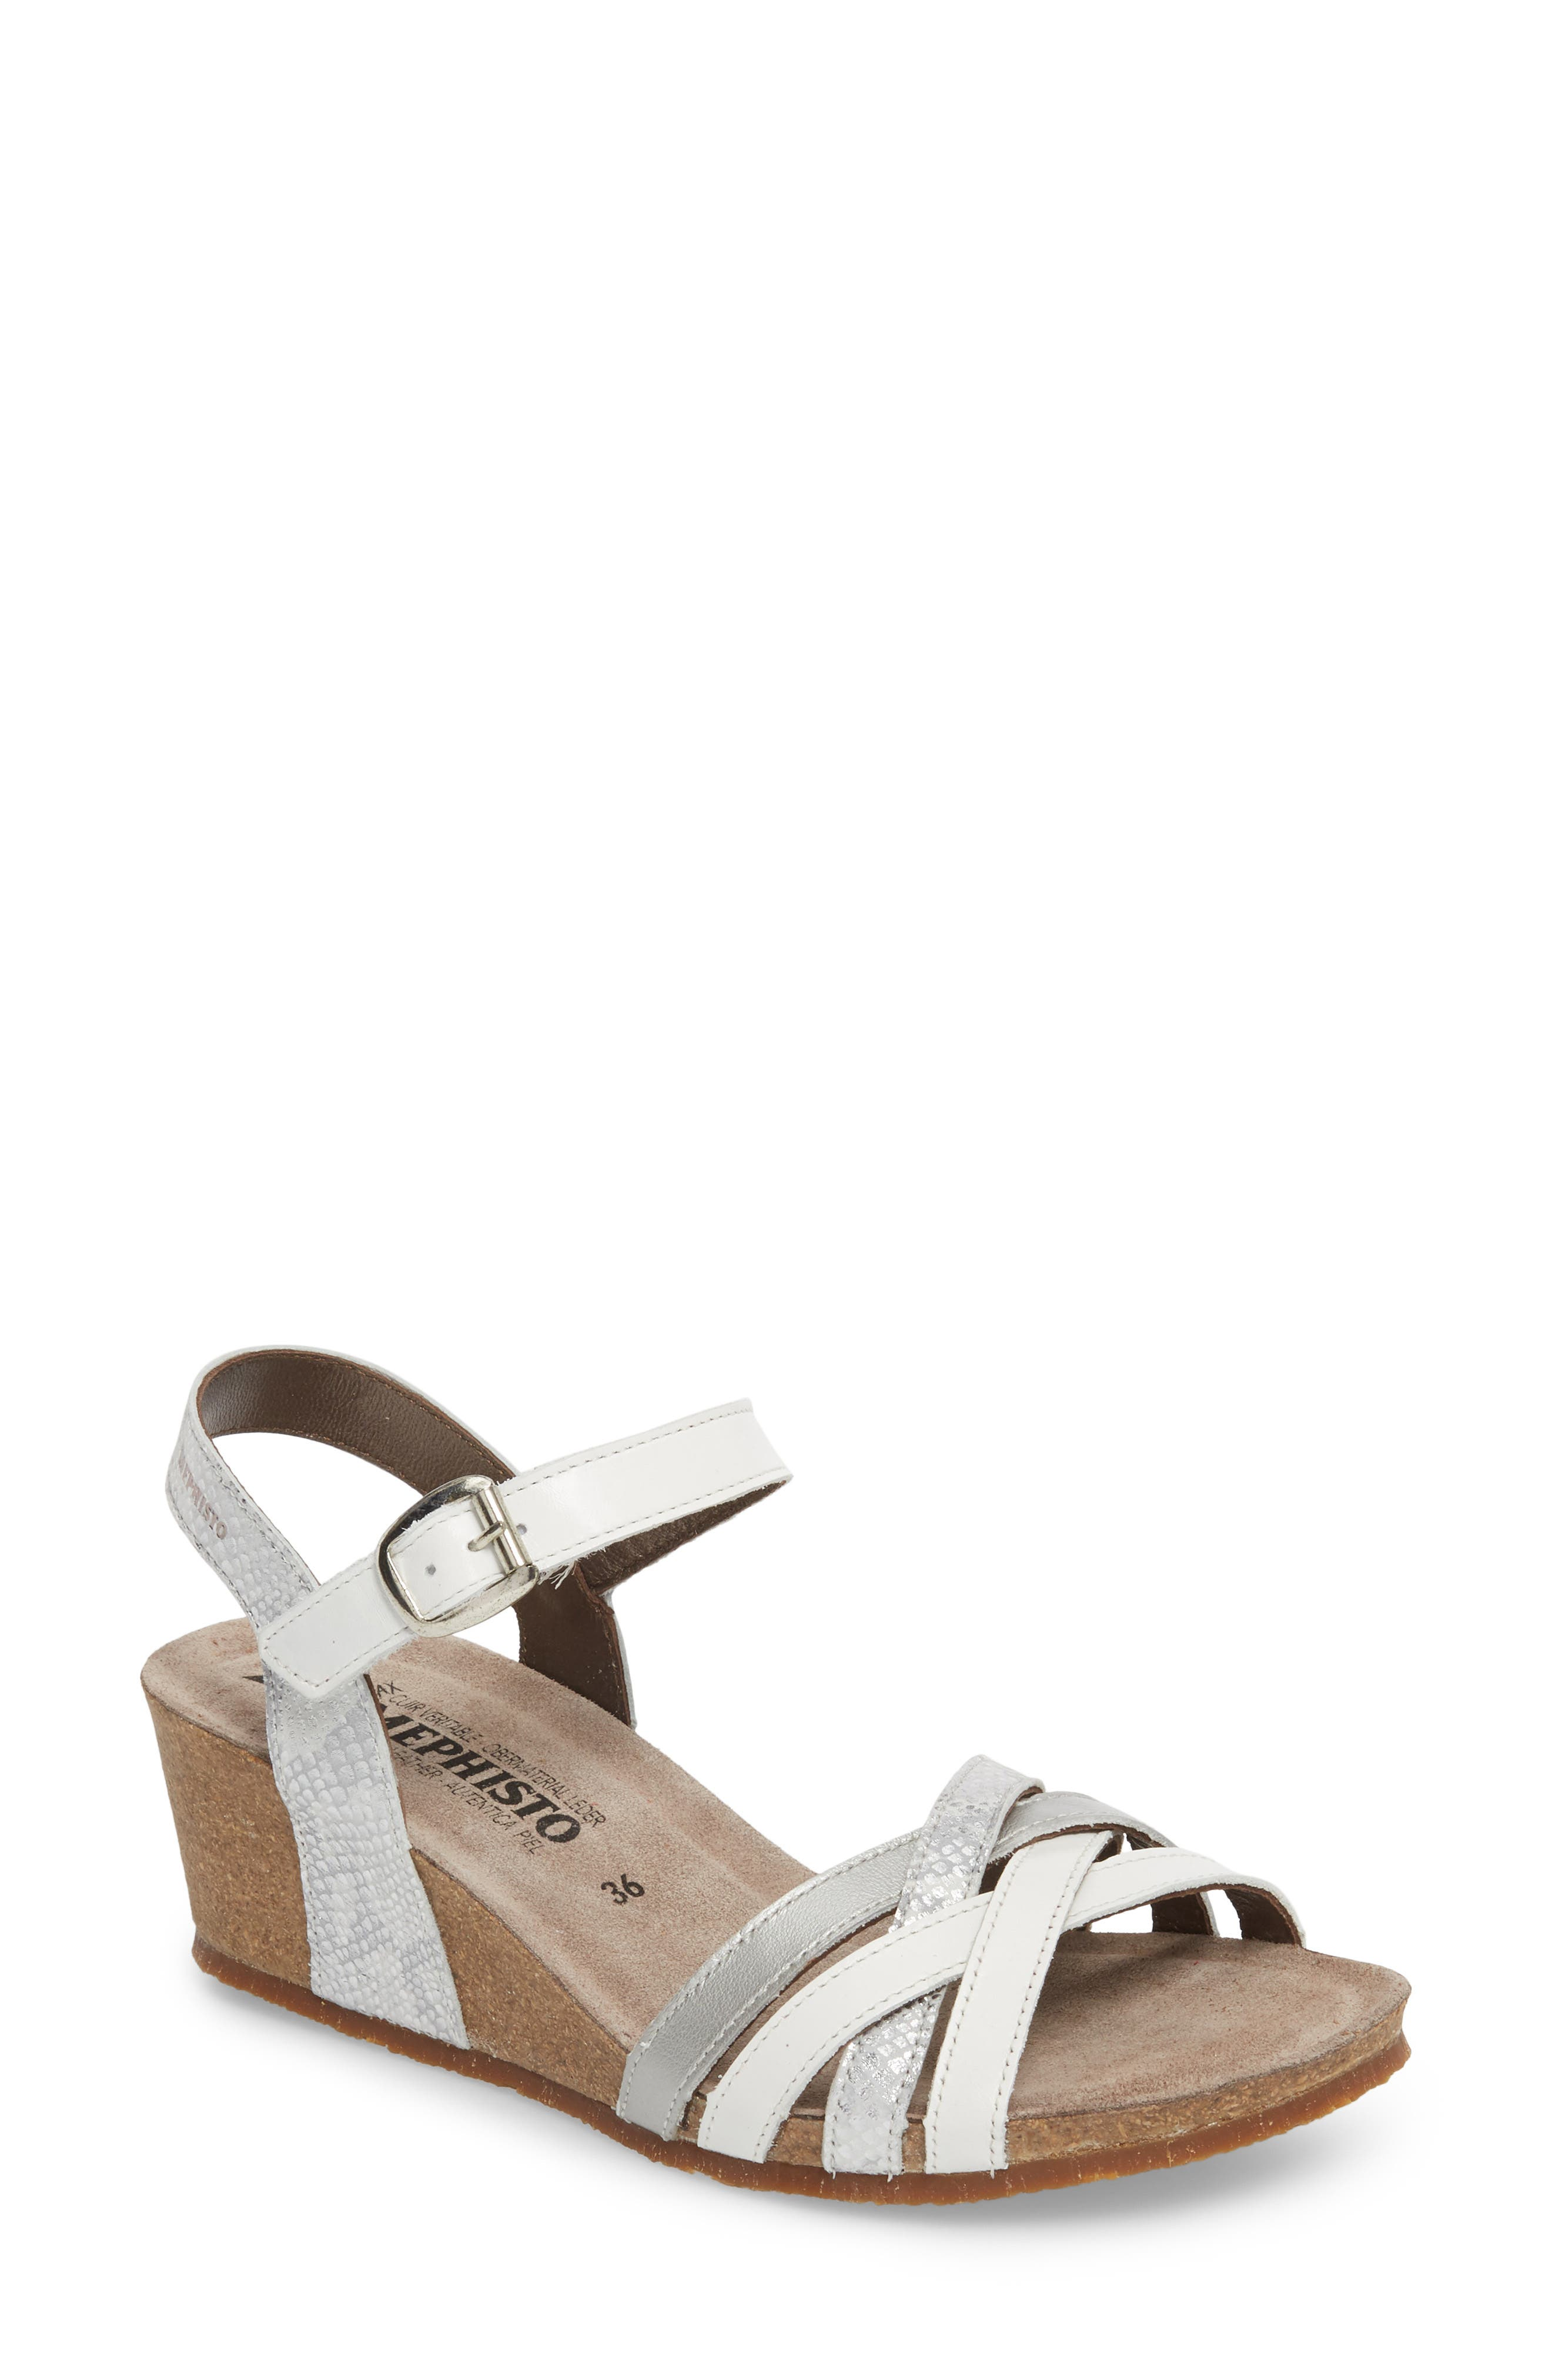 Mado Wedge Sandal,                         Main,                         color, White Leather